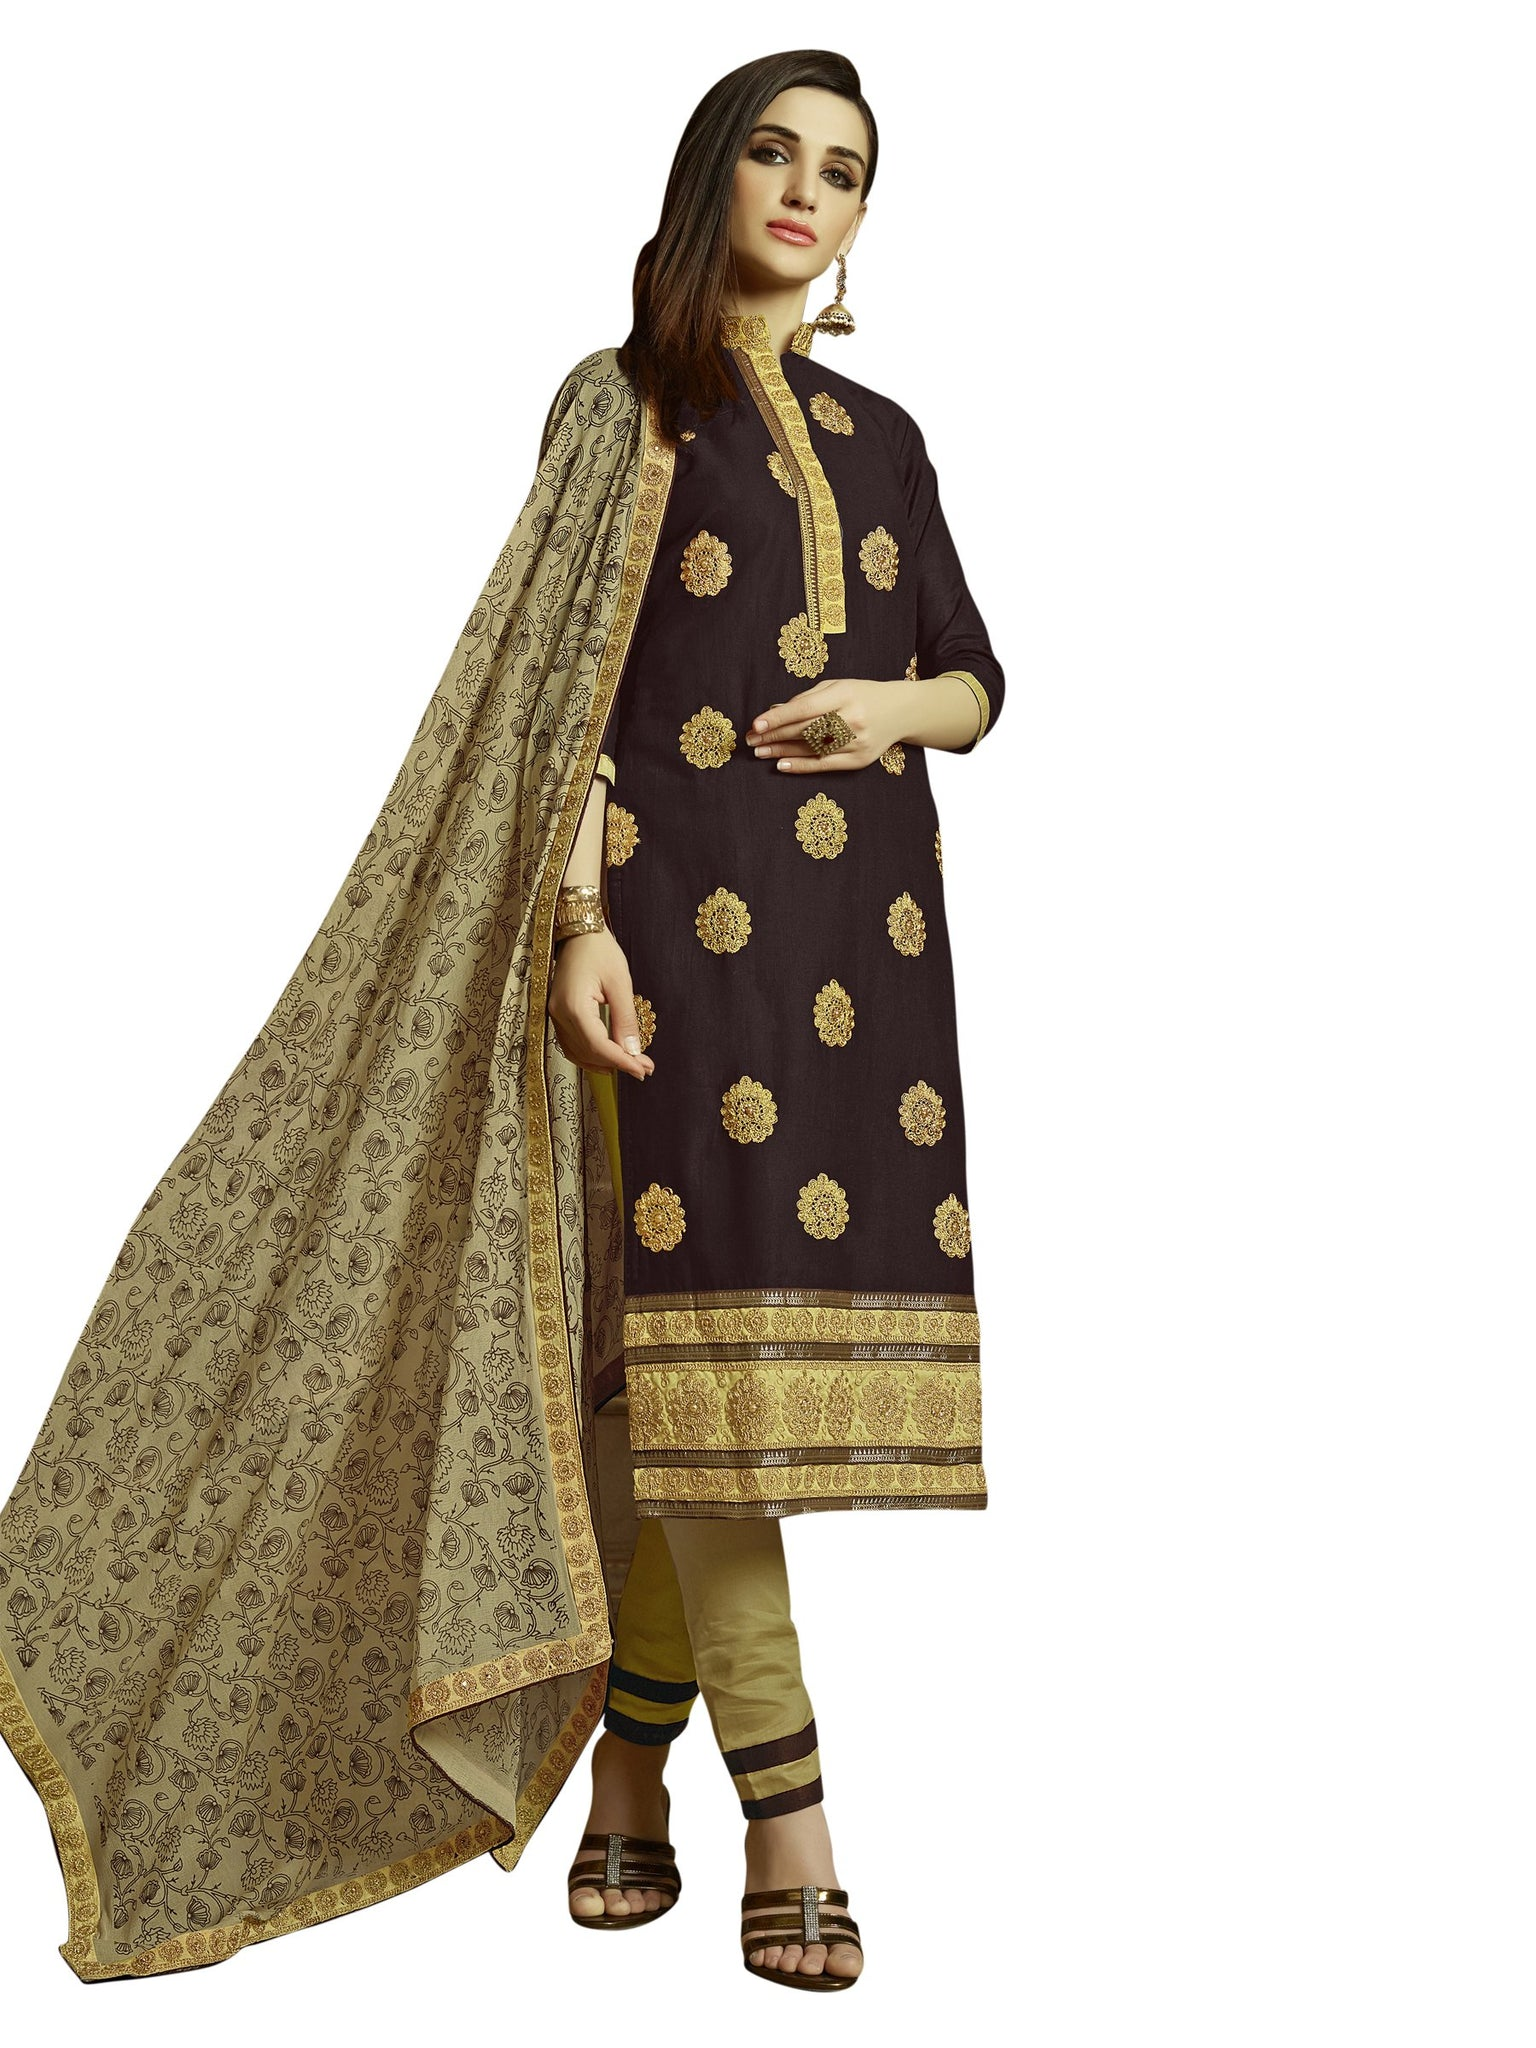 Styleez Salwar Kameez 181 Embellished Cording Work With Pearl & Crystal, Ready Lace